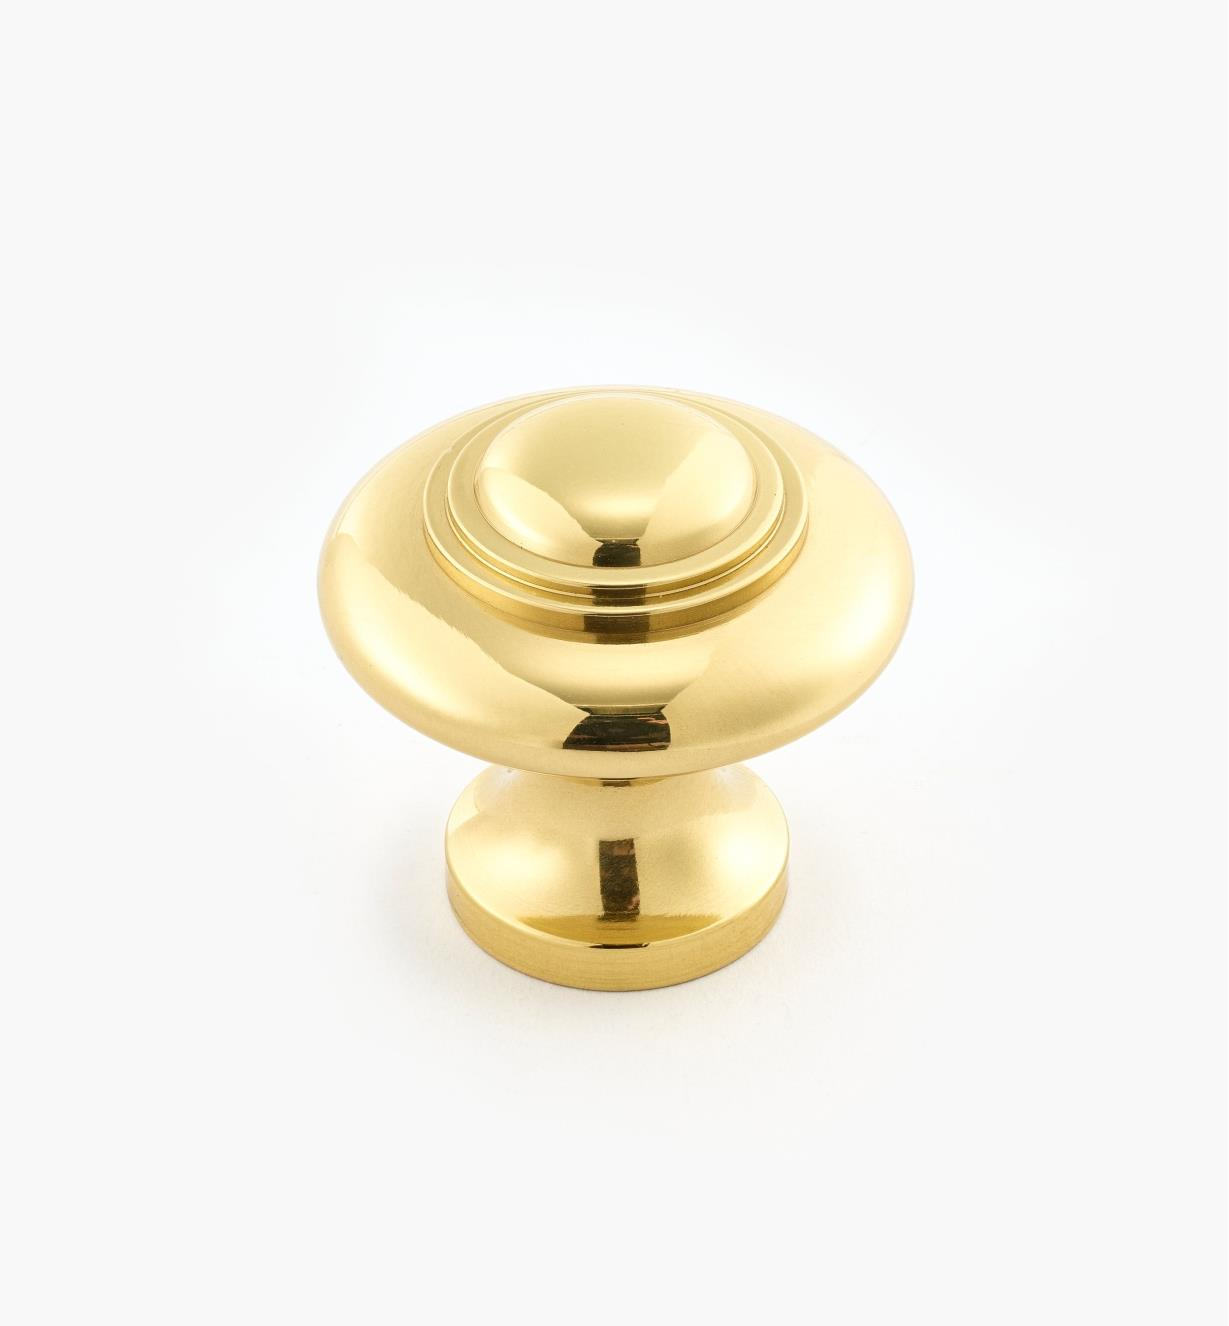 "02W2643 - Polished Brass Suite - 1 5/16"" x 1 1/4"" Cast Brass Ring Knob"